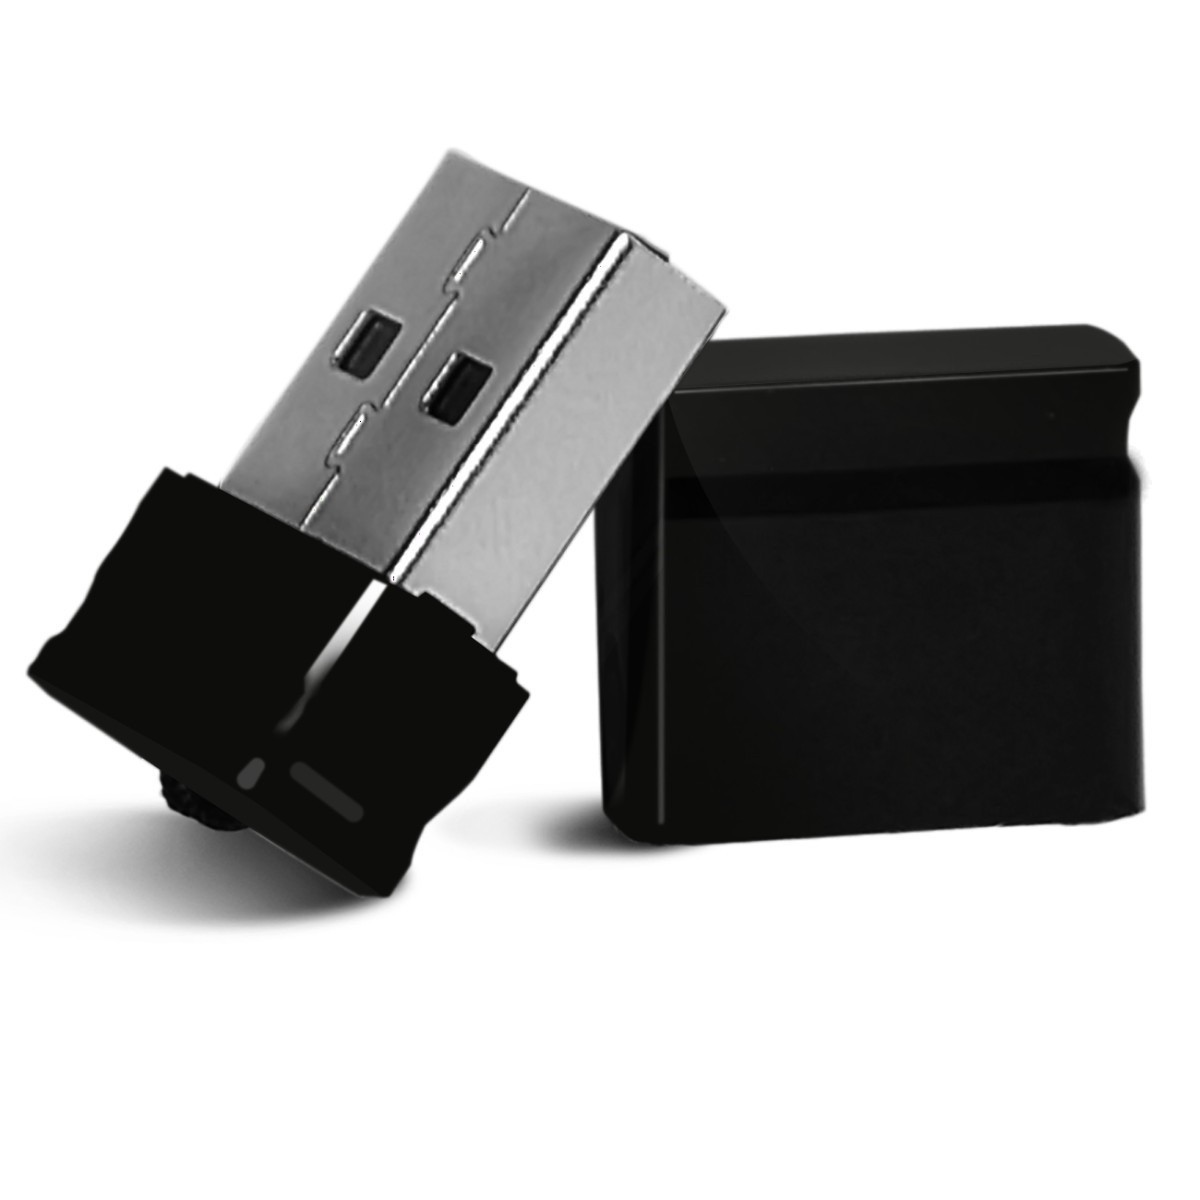 PENDRIVE NANO 16GB PRETO MULTILASER PD054